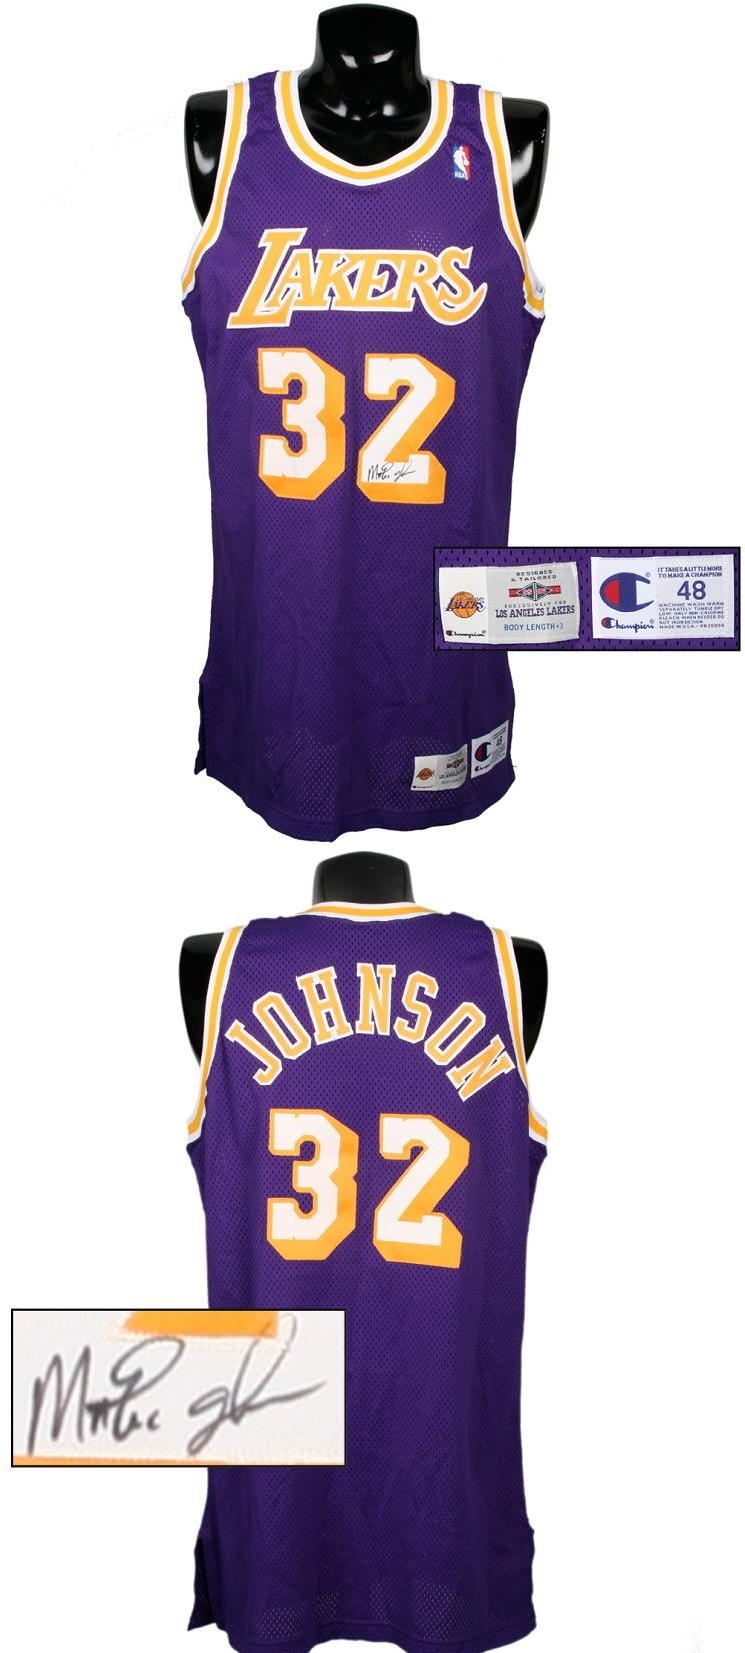 quality design f7957 eaf55 1995-96 Magic Johnson Game-Worn, Signed Lakers Jersey